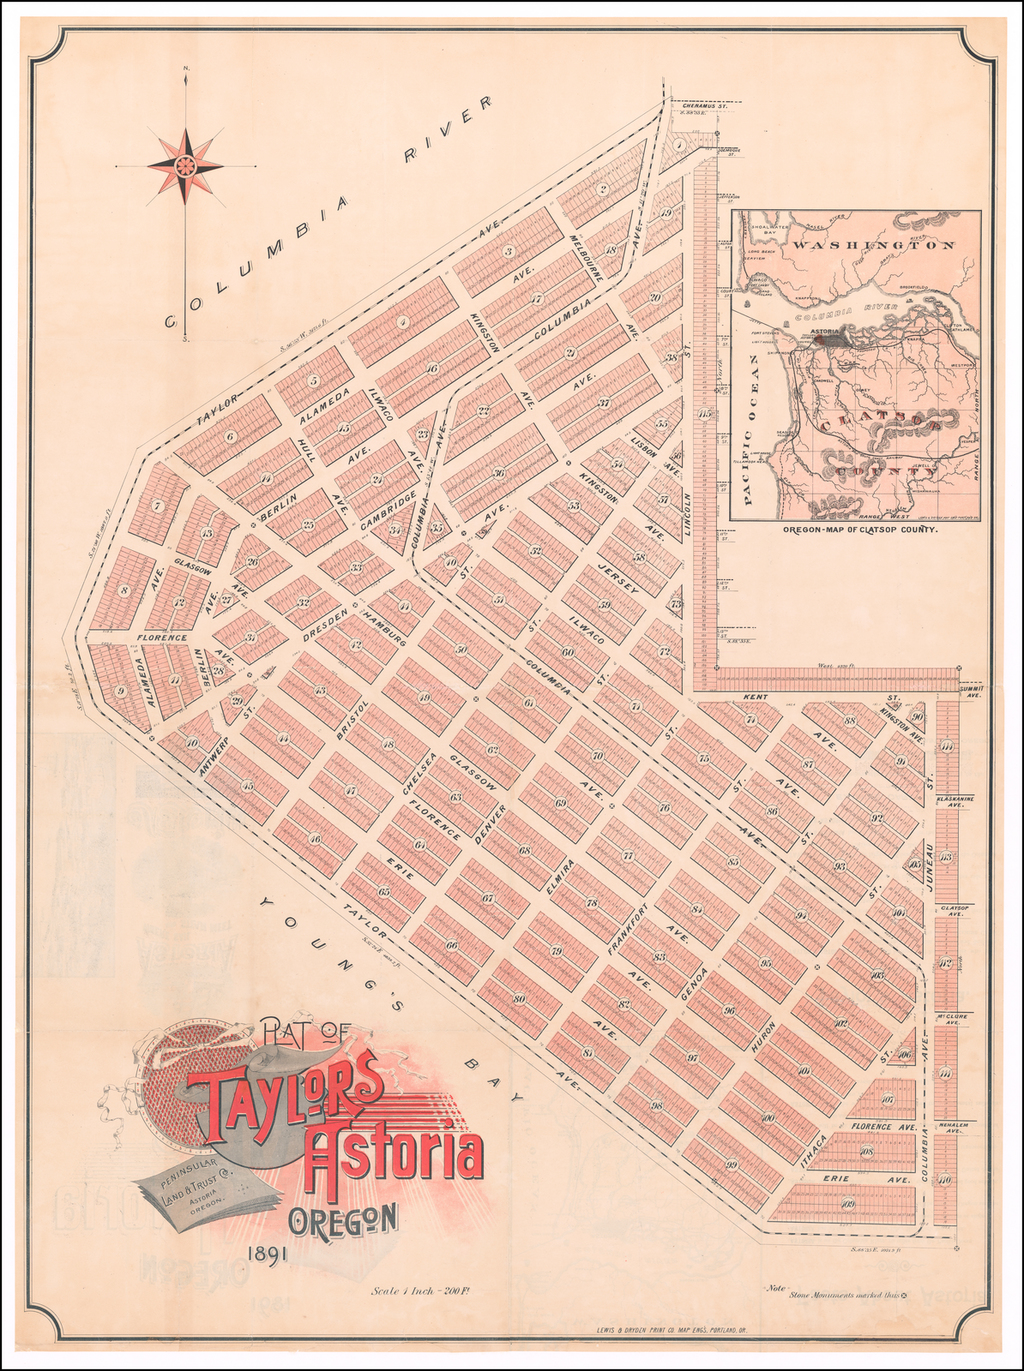 Plat of Taylors Astoria Oregon  Peninsular Land & Trust Co. . . .  1881 By Lewis & Dryden Print Co. Map Eng's